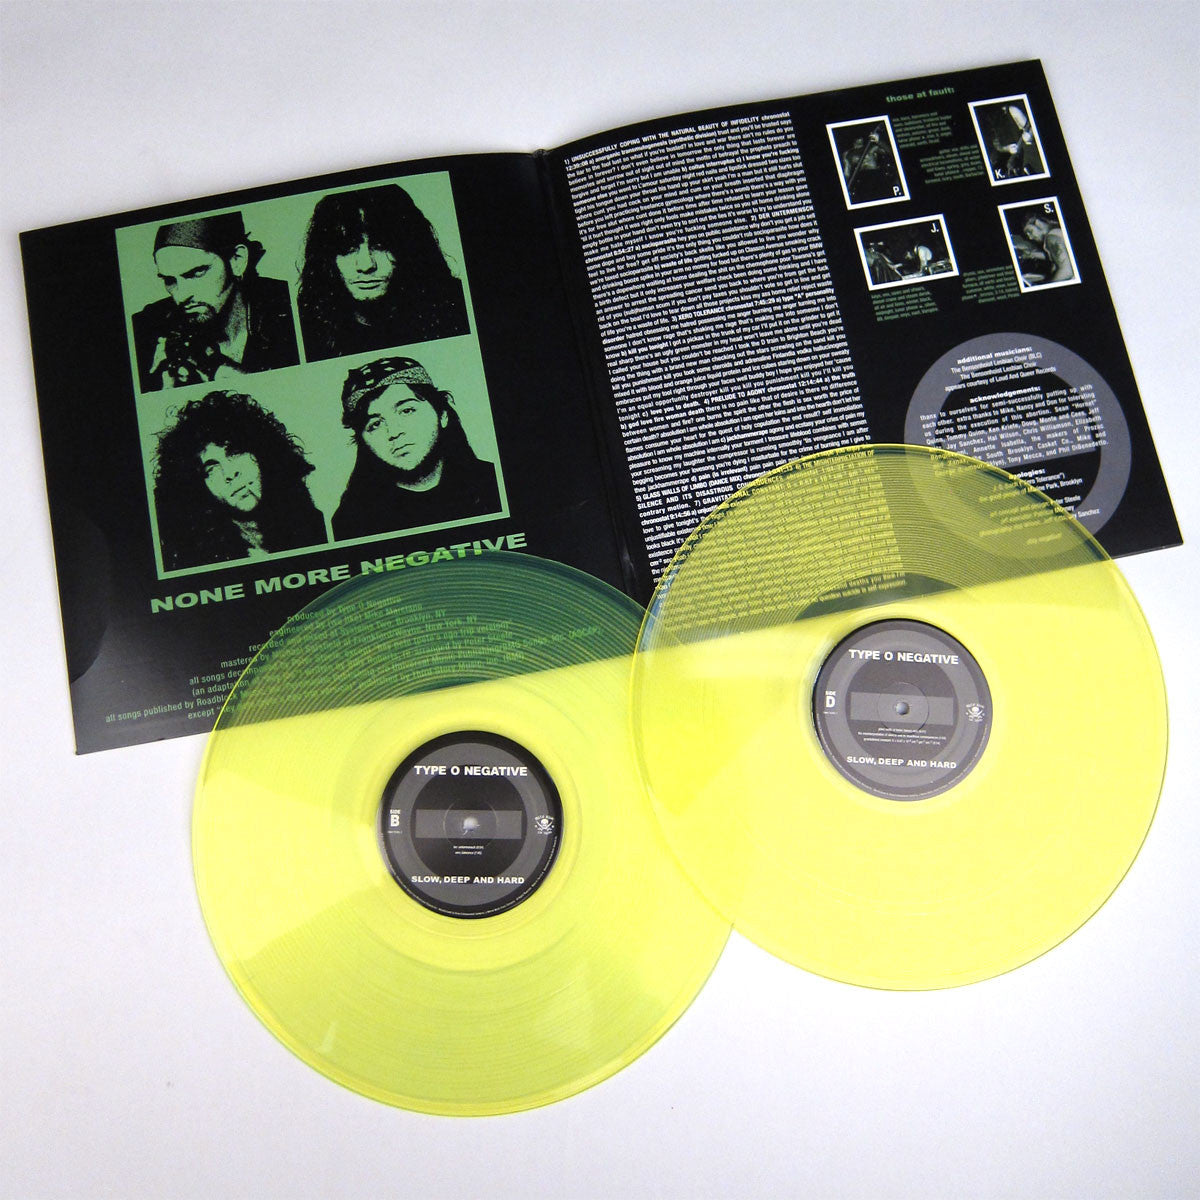 Type O Negative: Slow Deep Hard (180g Green Vinyl) Vinyl 2LP (Record Store Day) detail